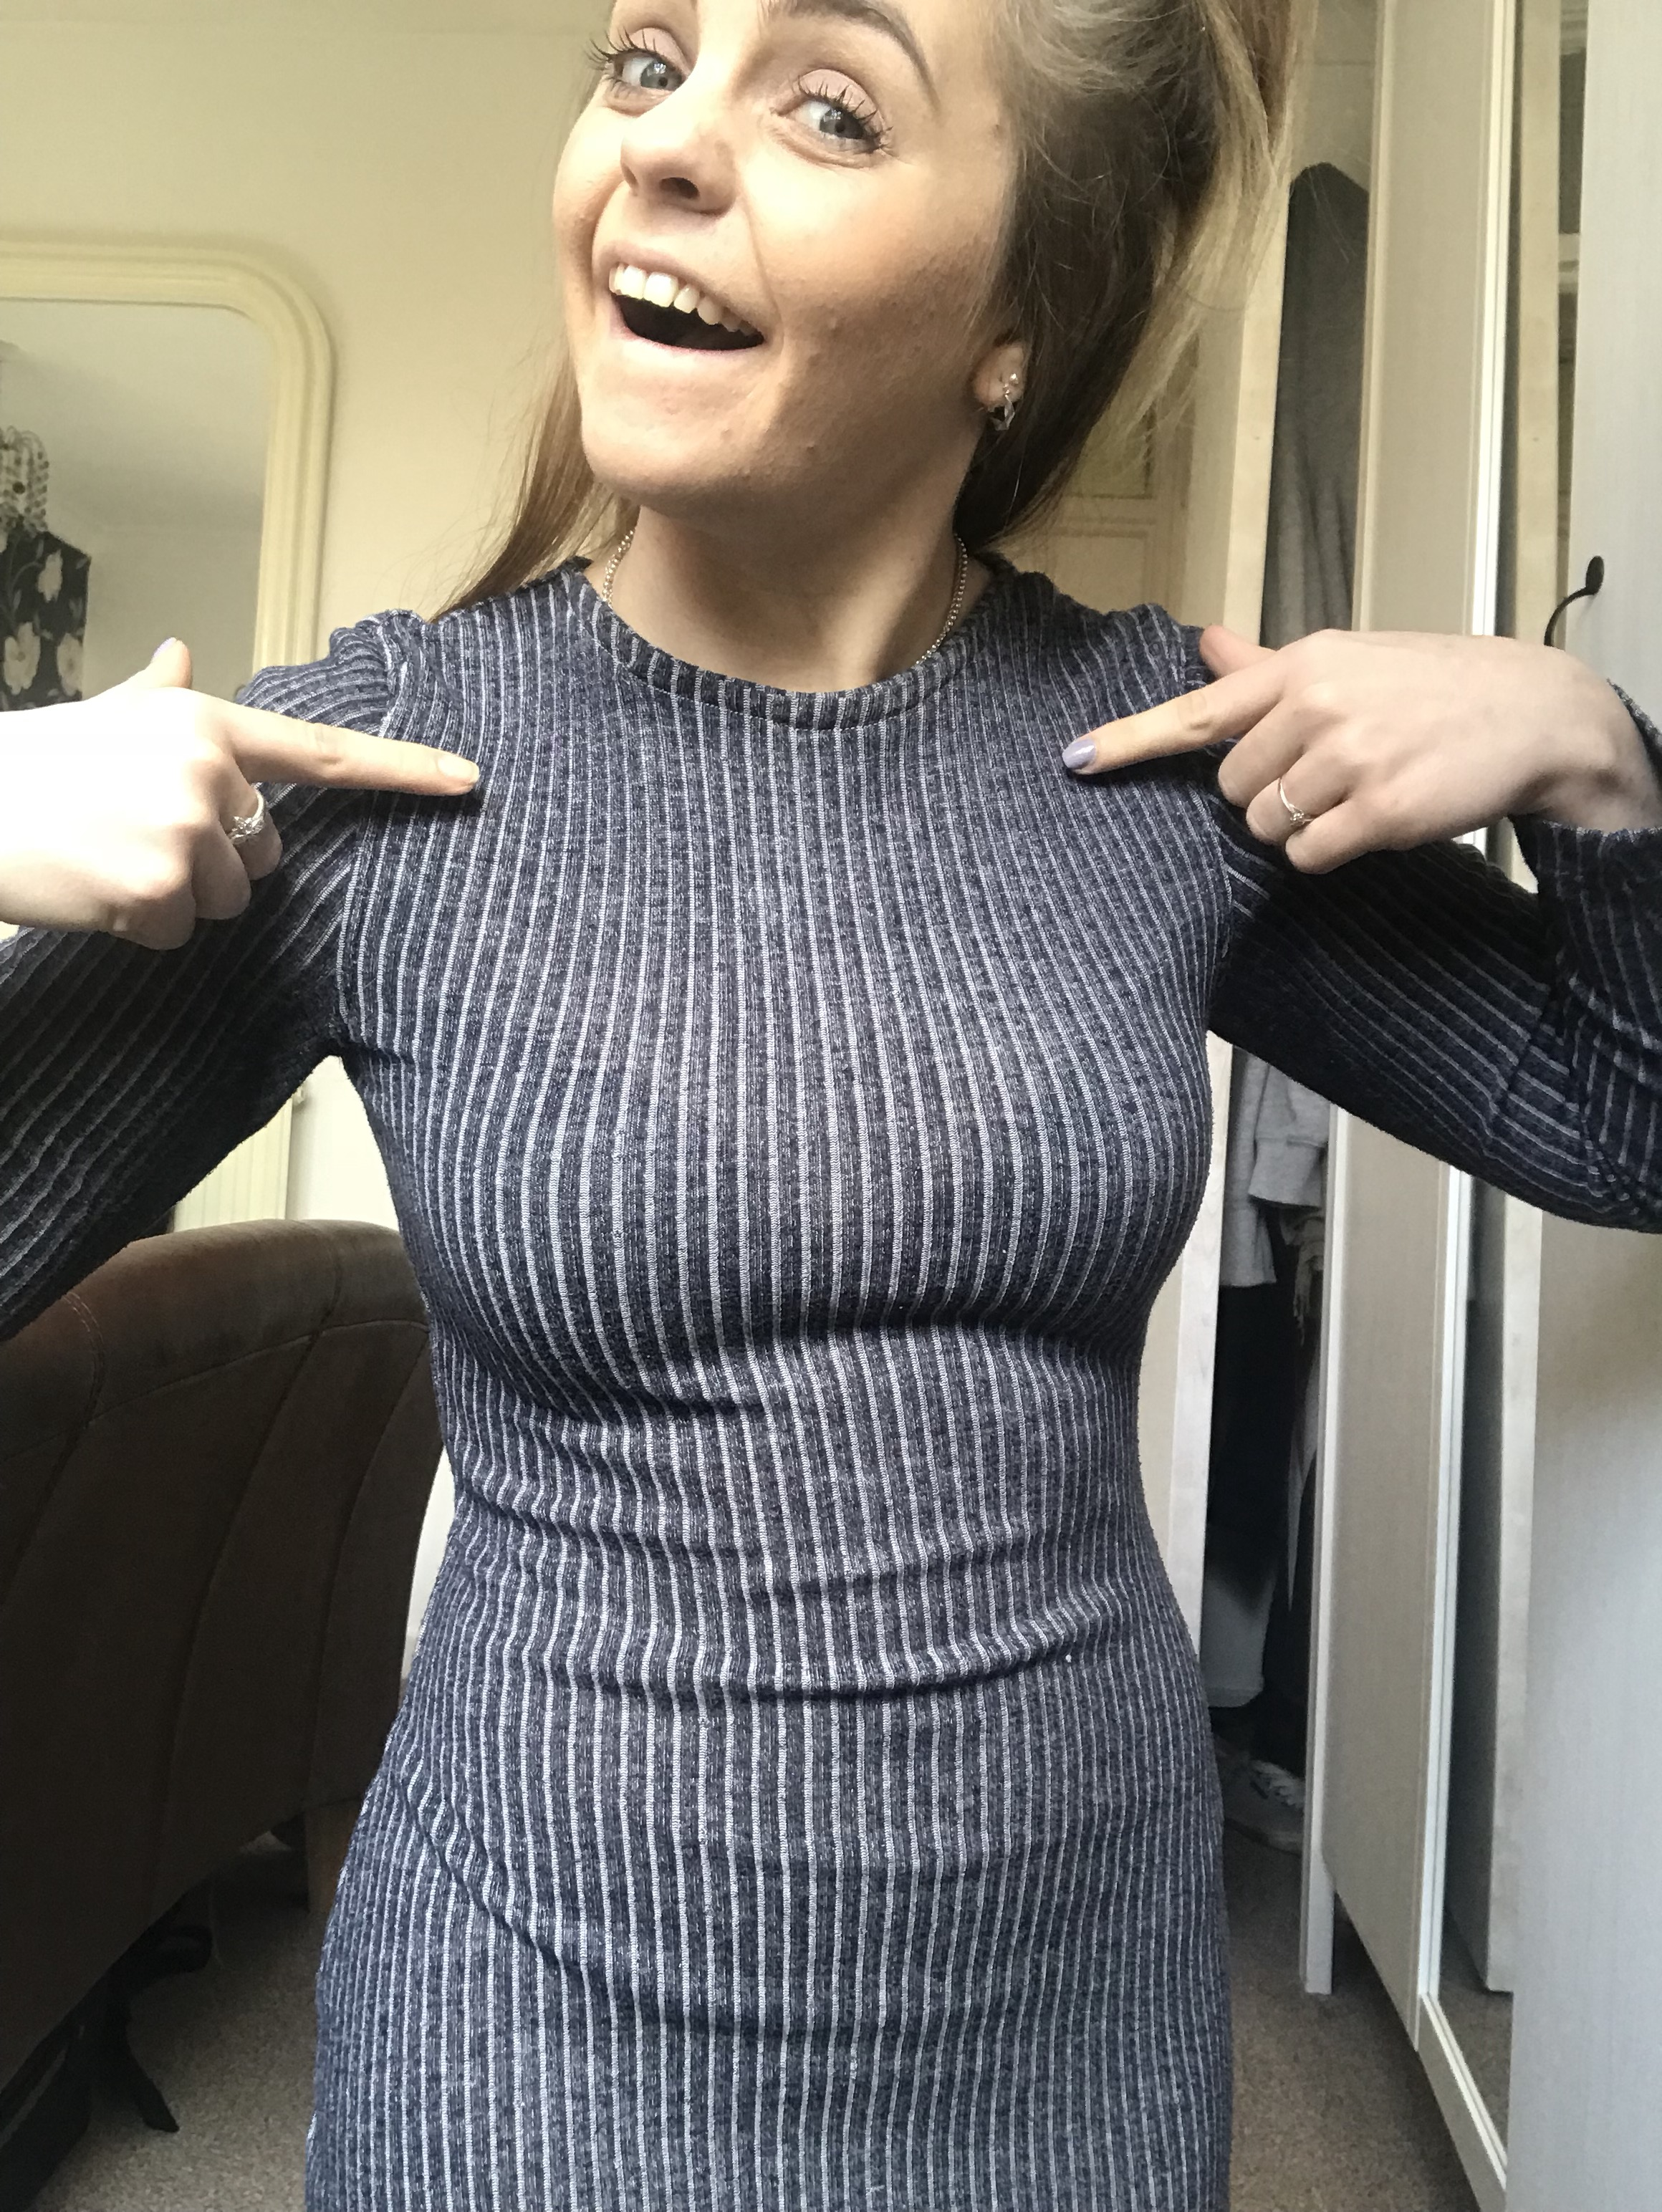 How to change the neckline on a dress